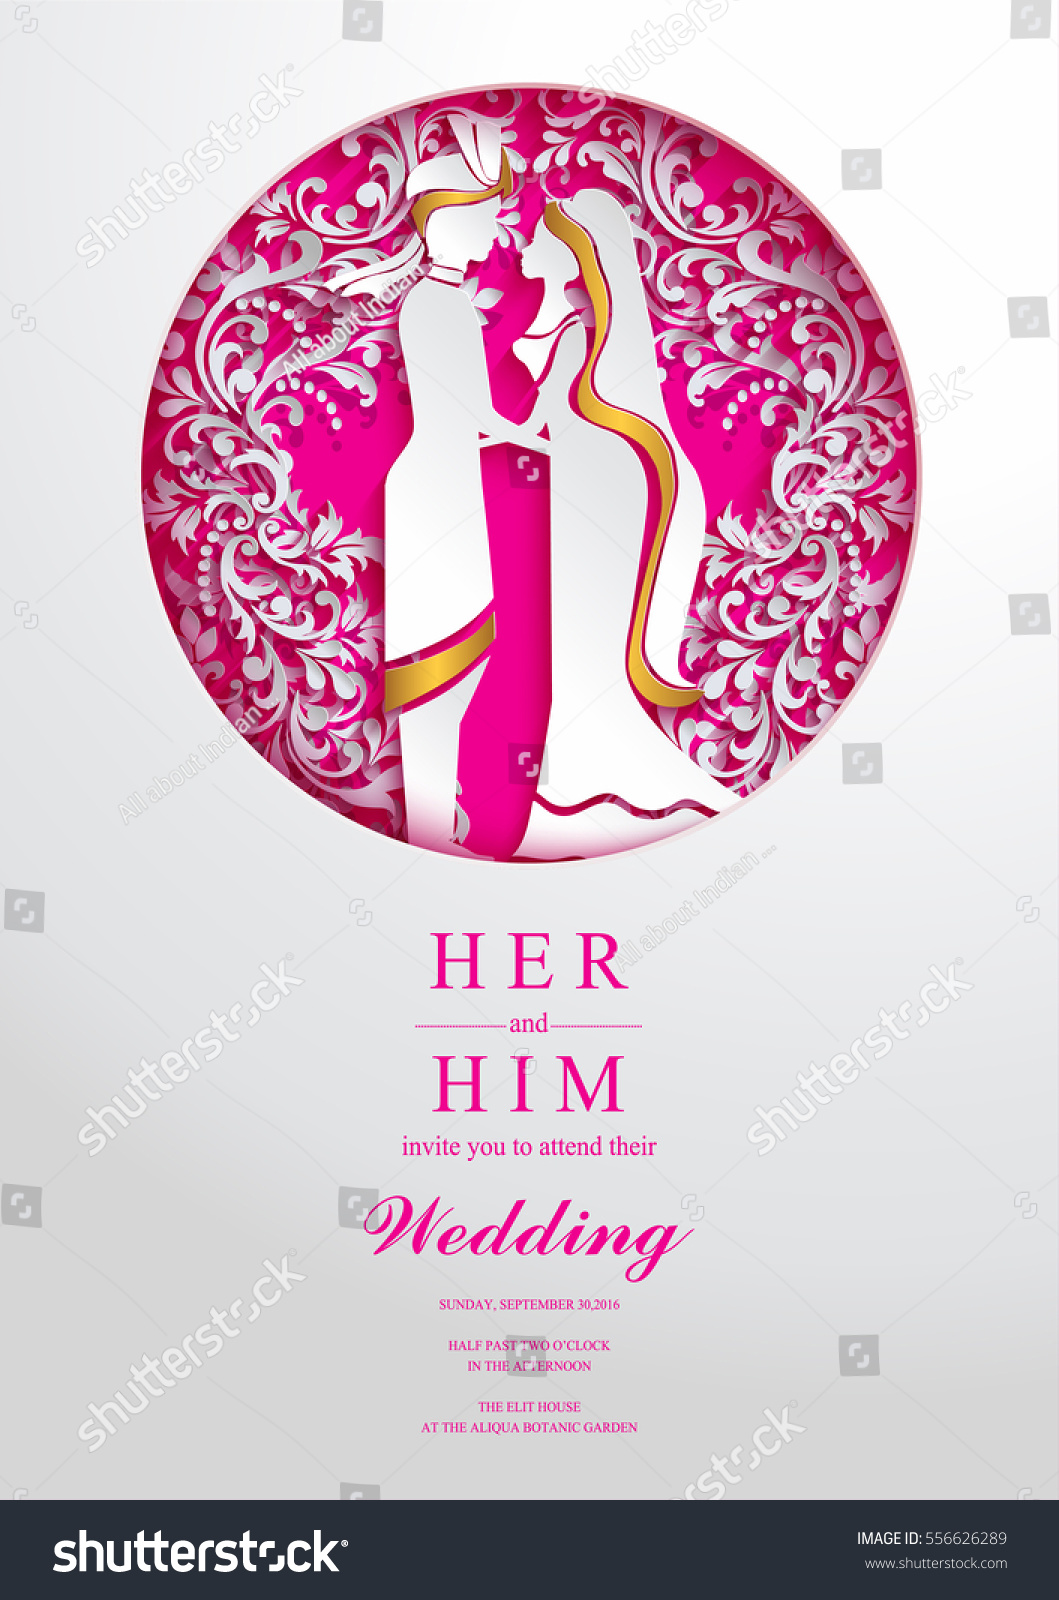 Indian Wedding Invitation Card Templates Paper Stock Vector (Royalty ...